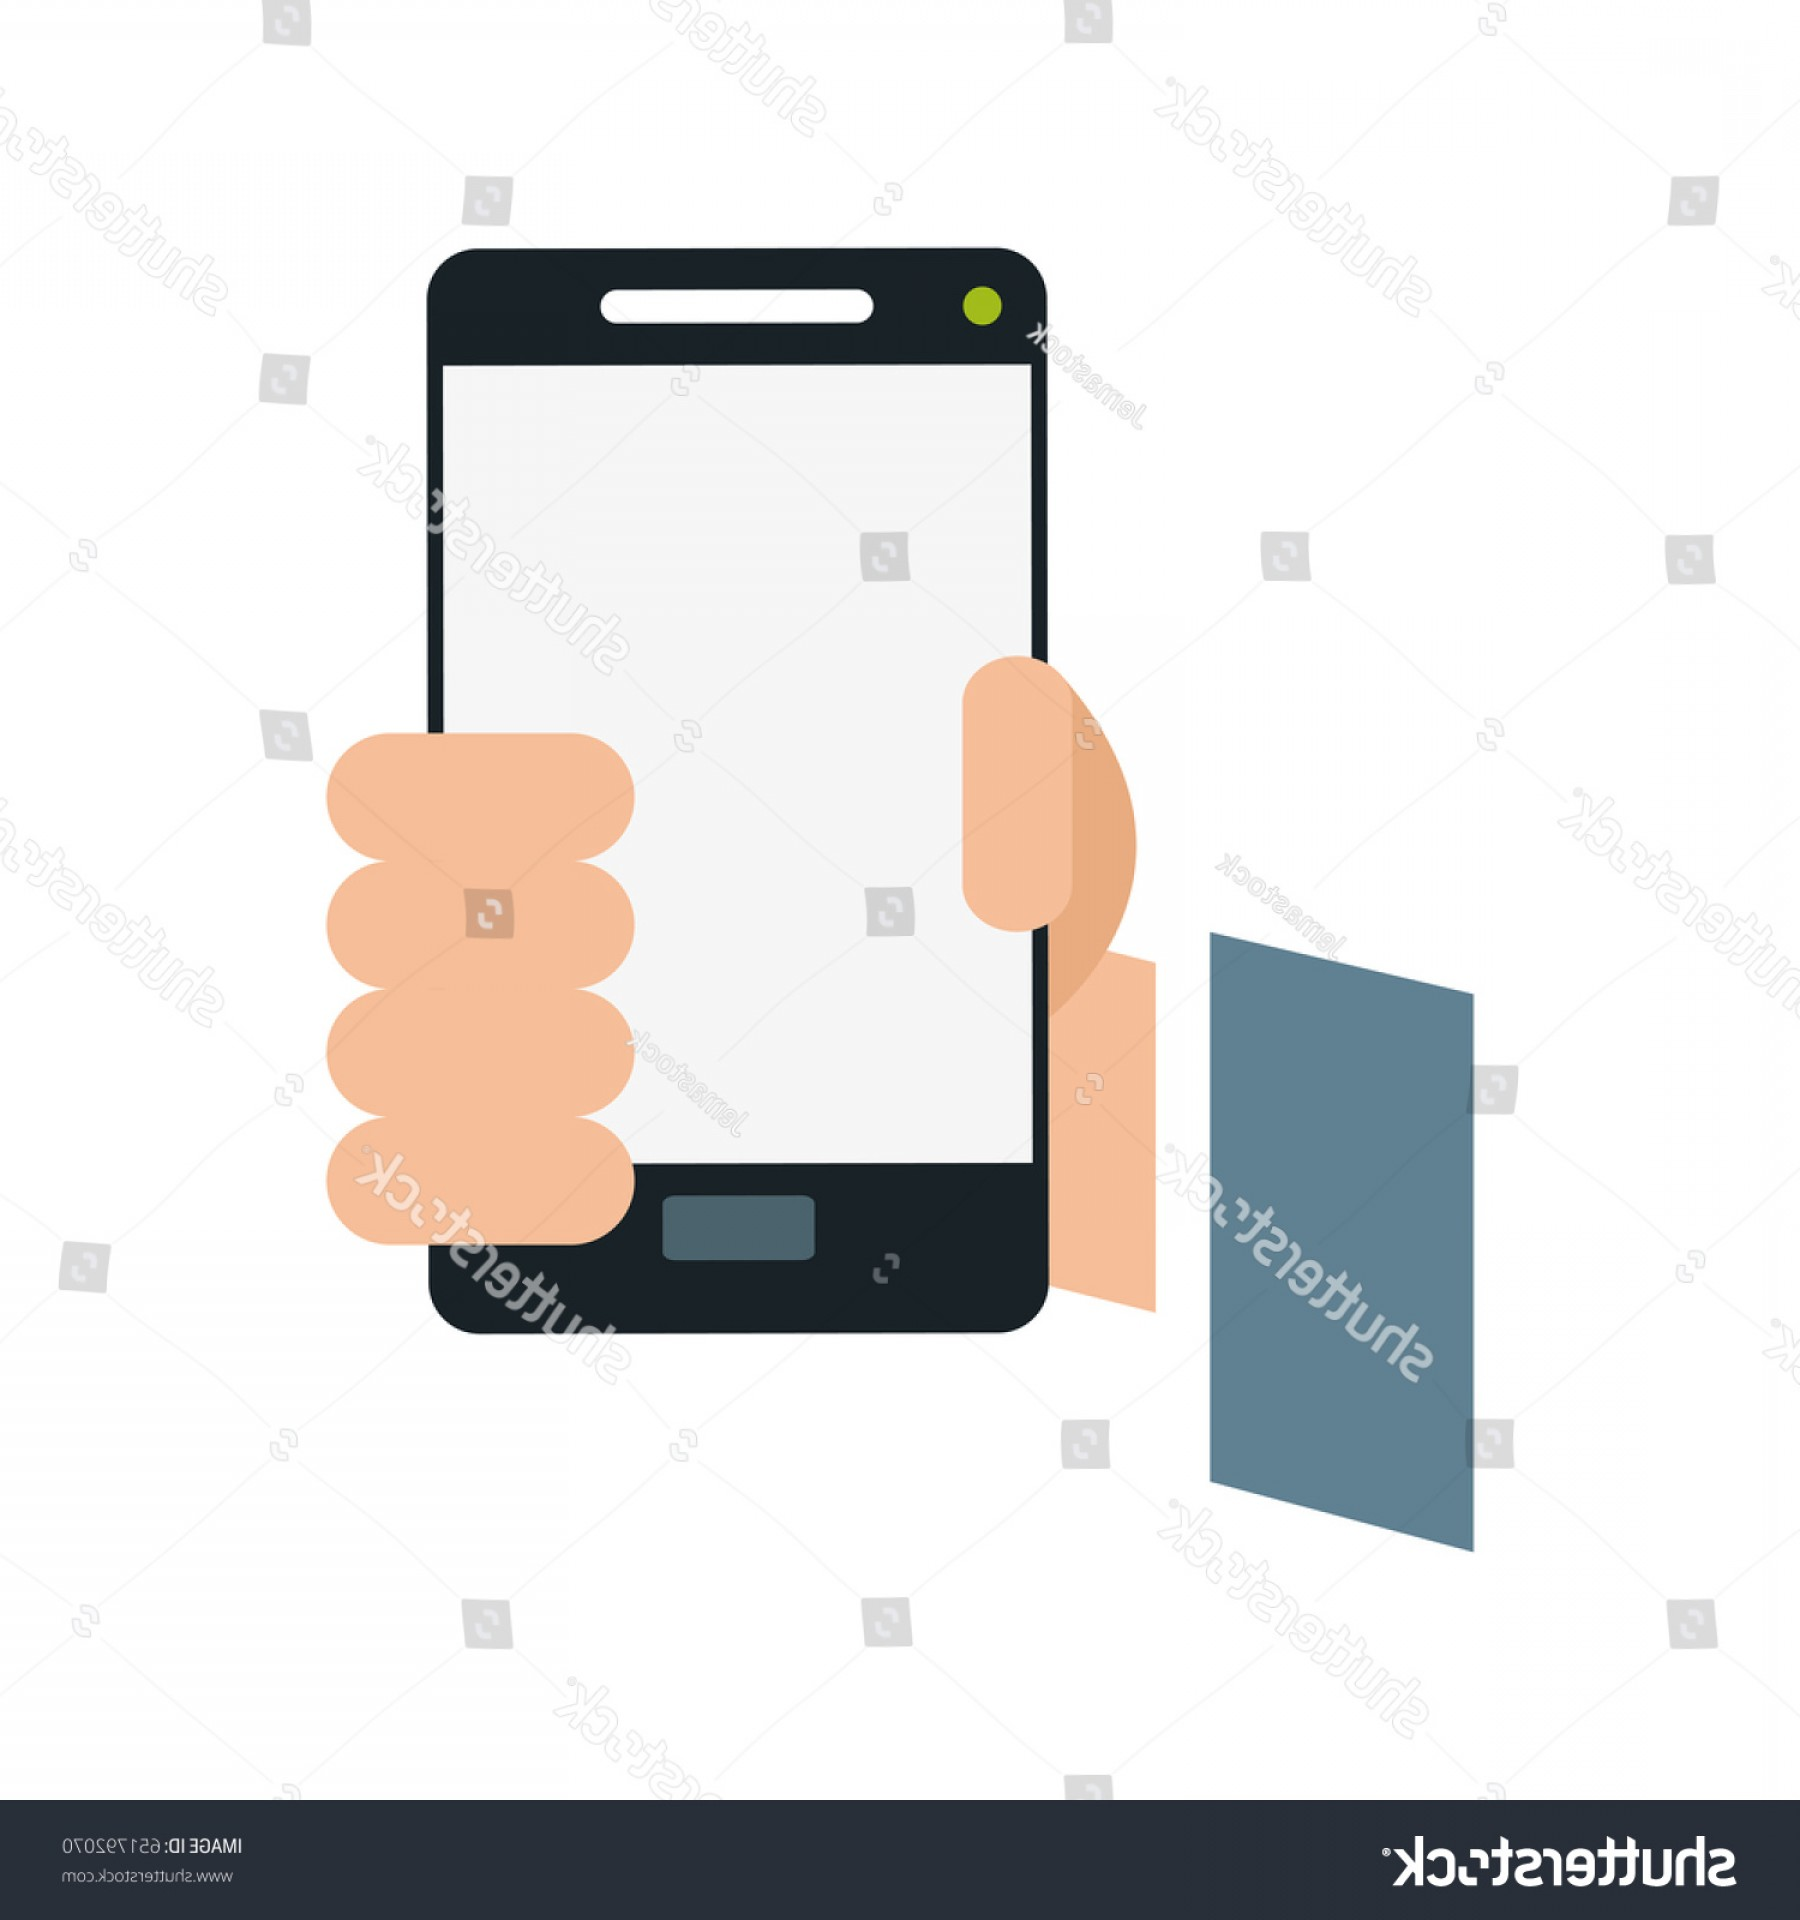 Vector Person Holding: Person Holding Smartphone Icon Image